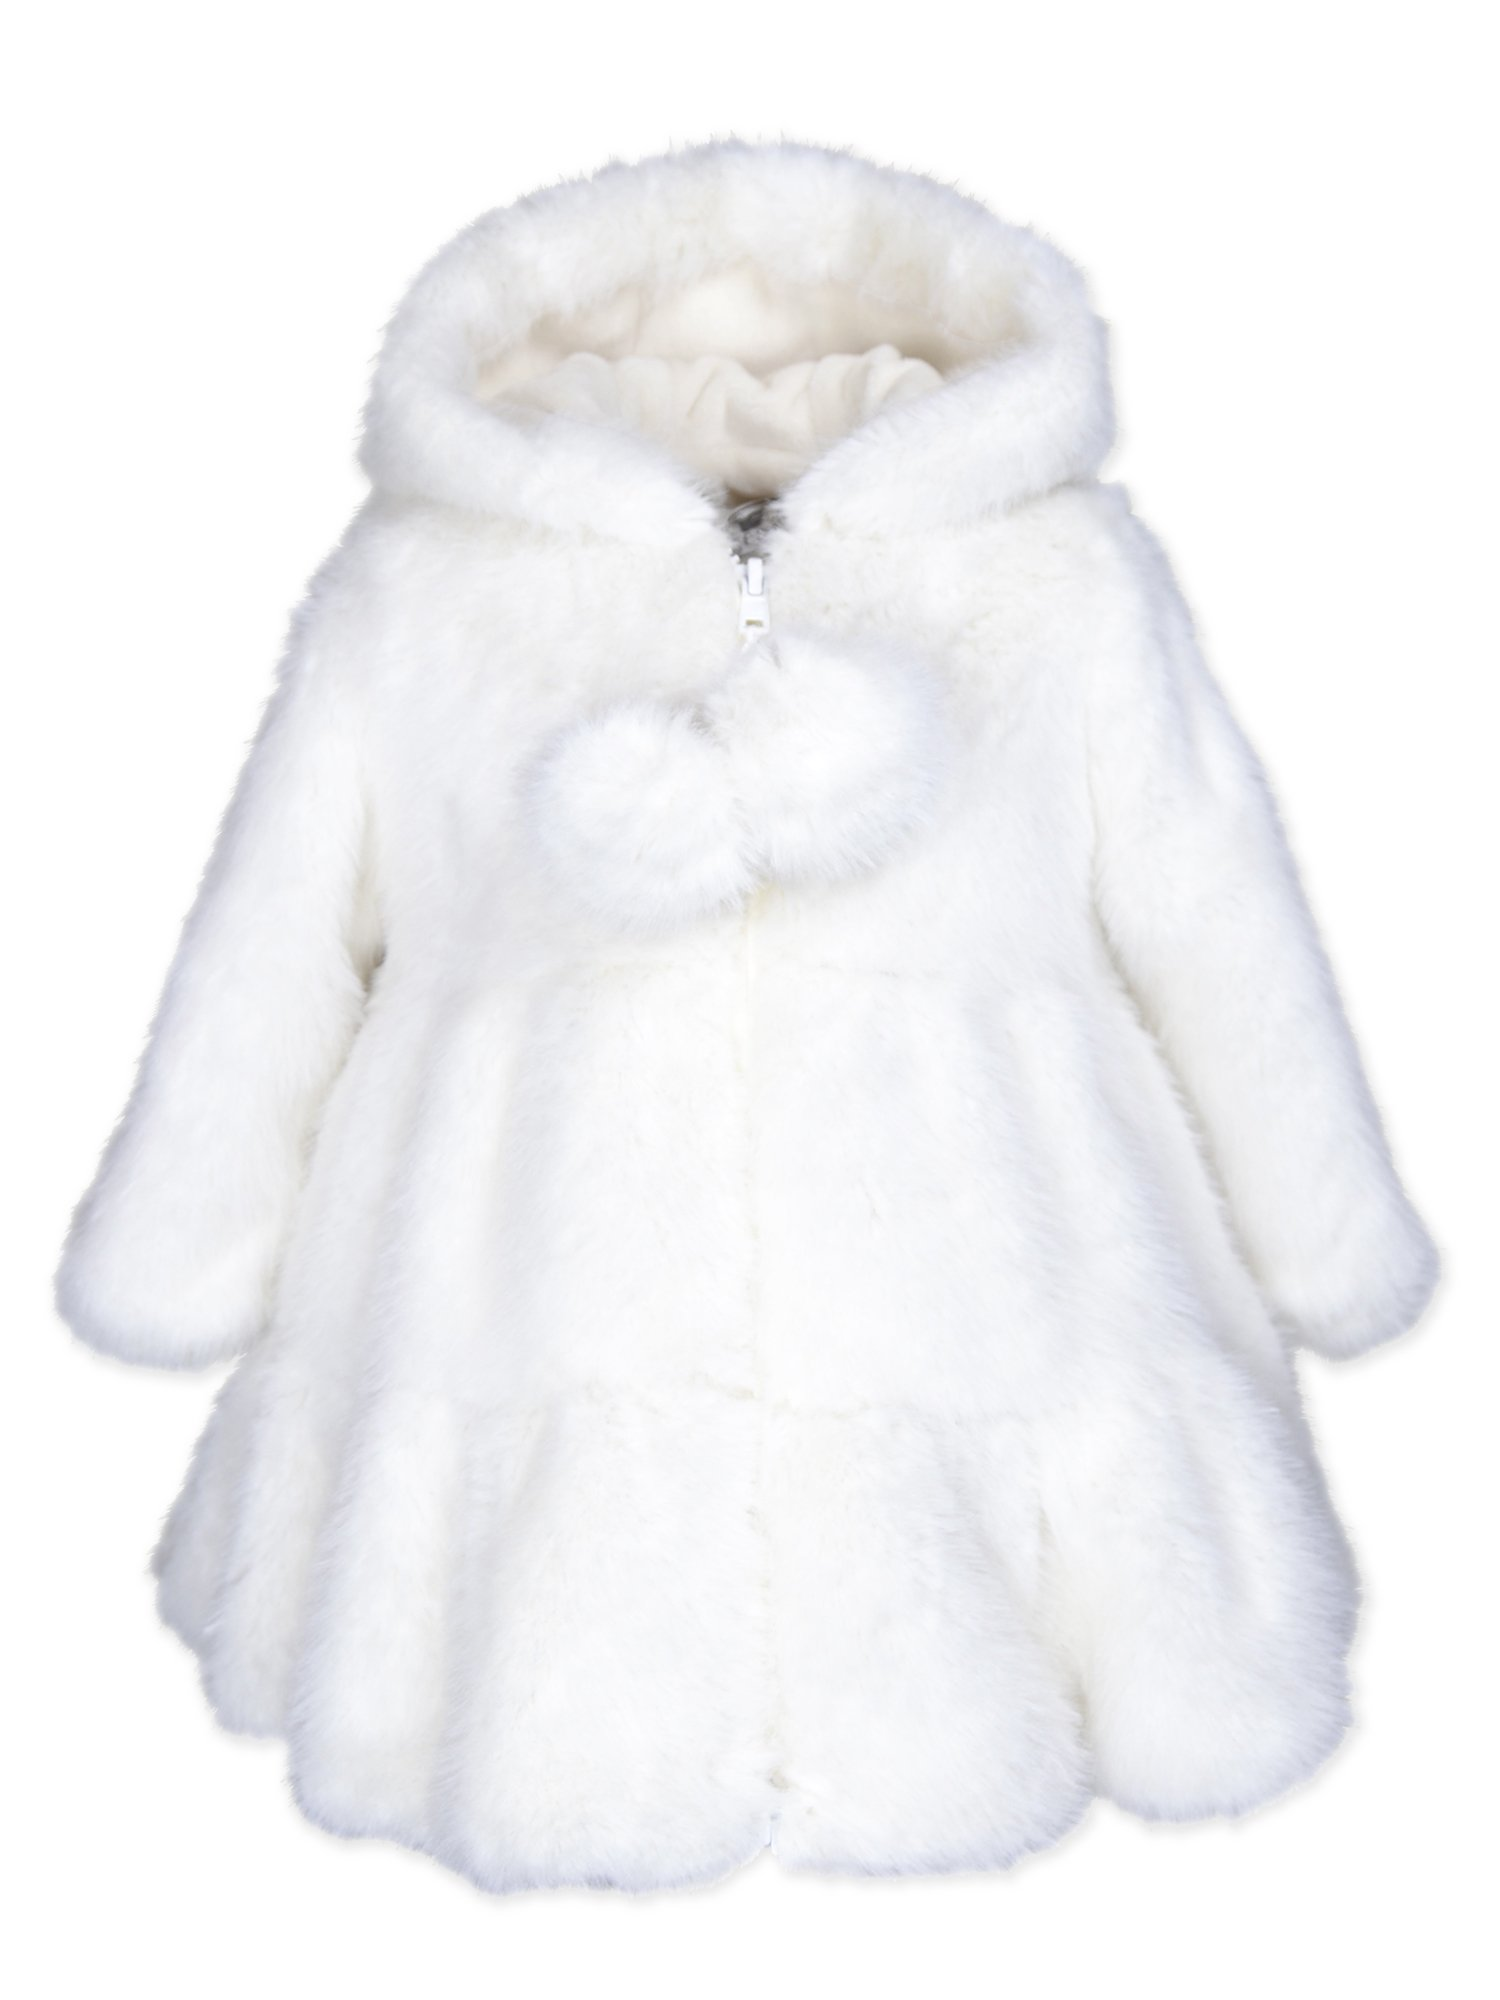 Widgeon Toddler Girls' Hooded Faux Fur Swing Coat 3674, Rbn/Snow Rabbit, 24 Months